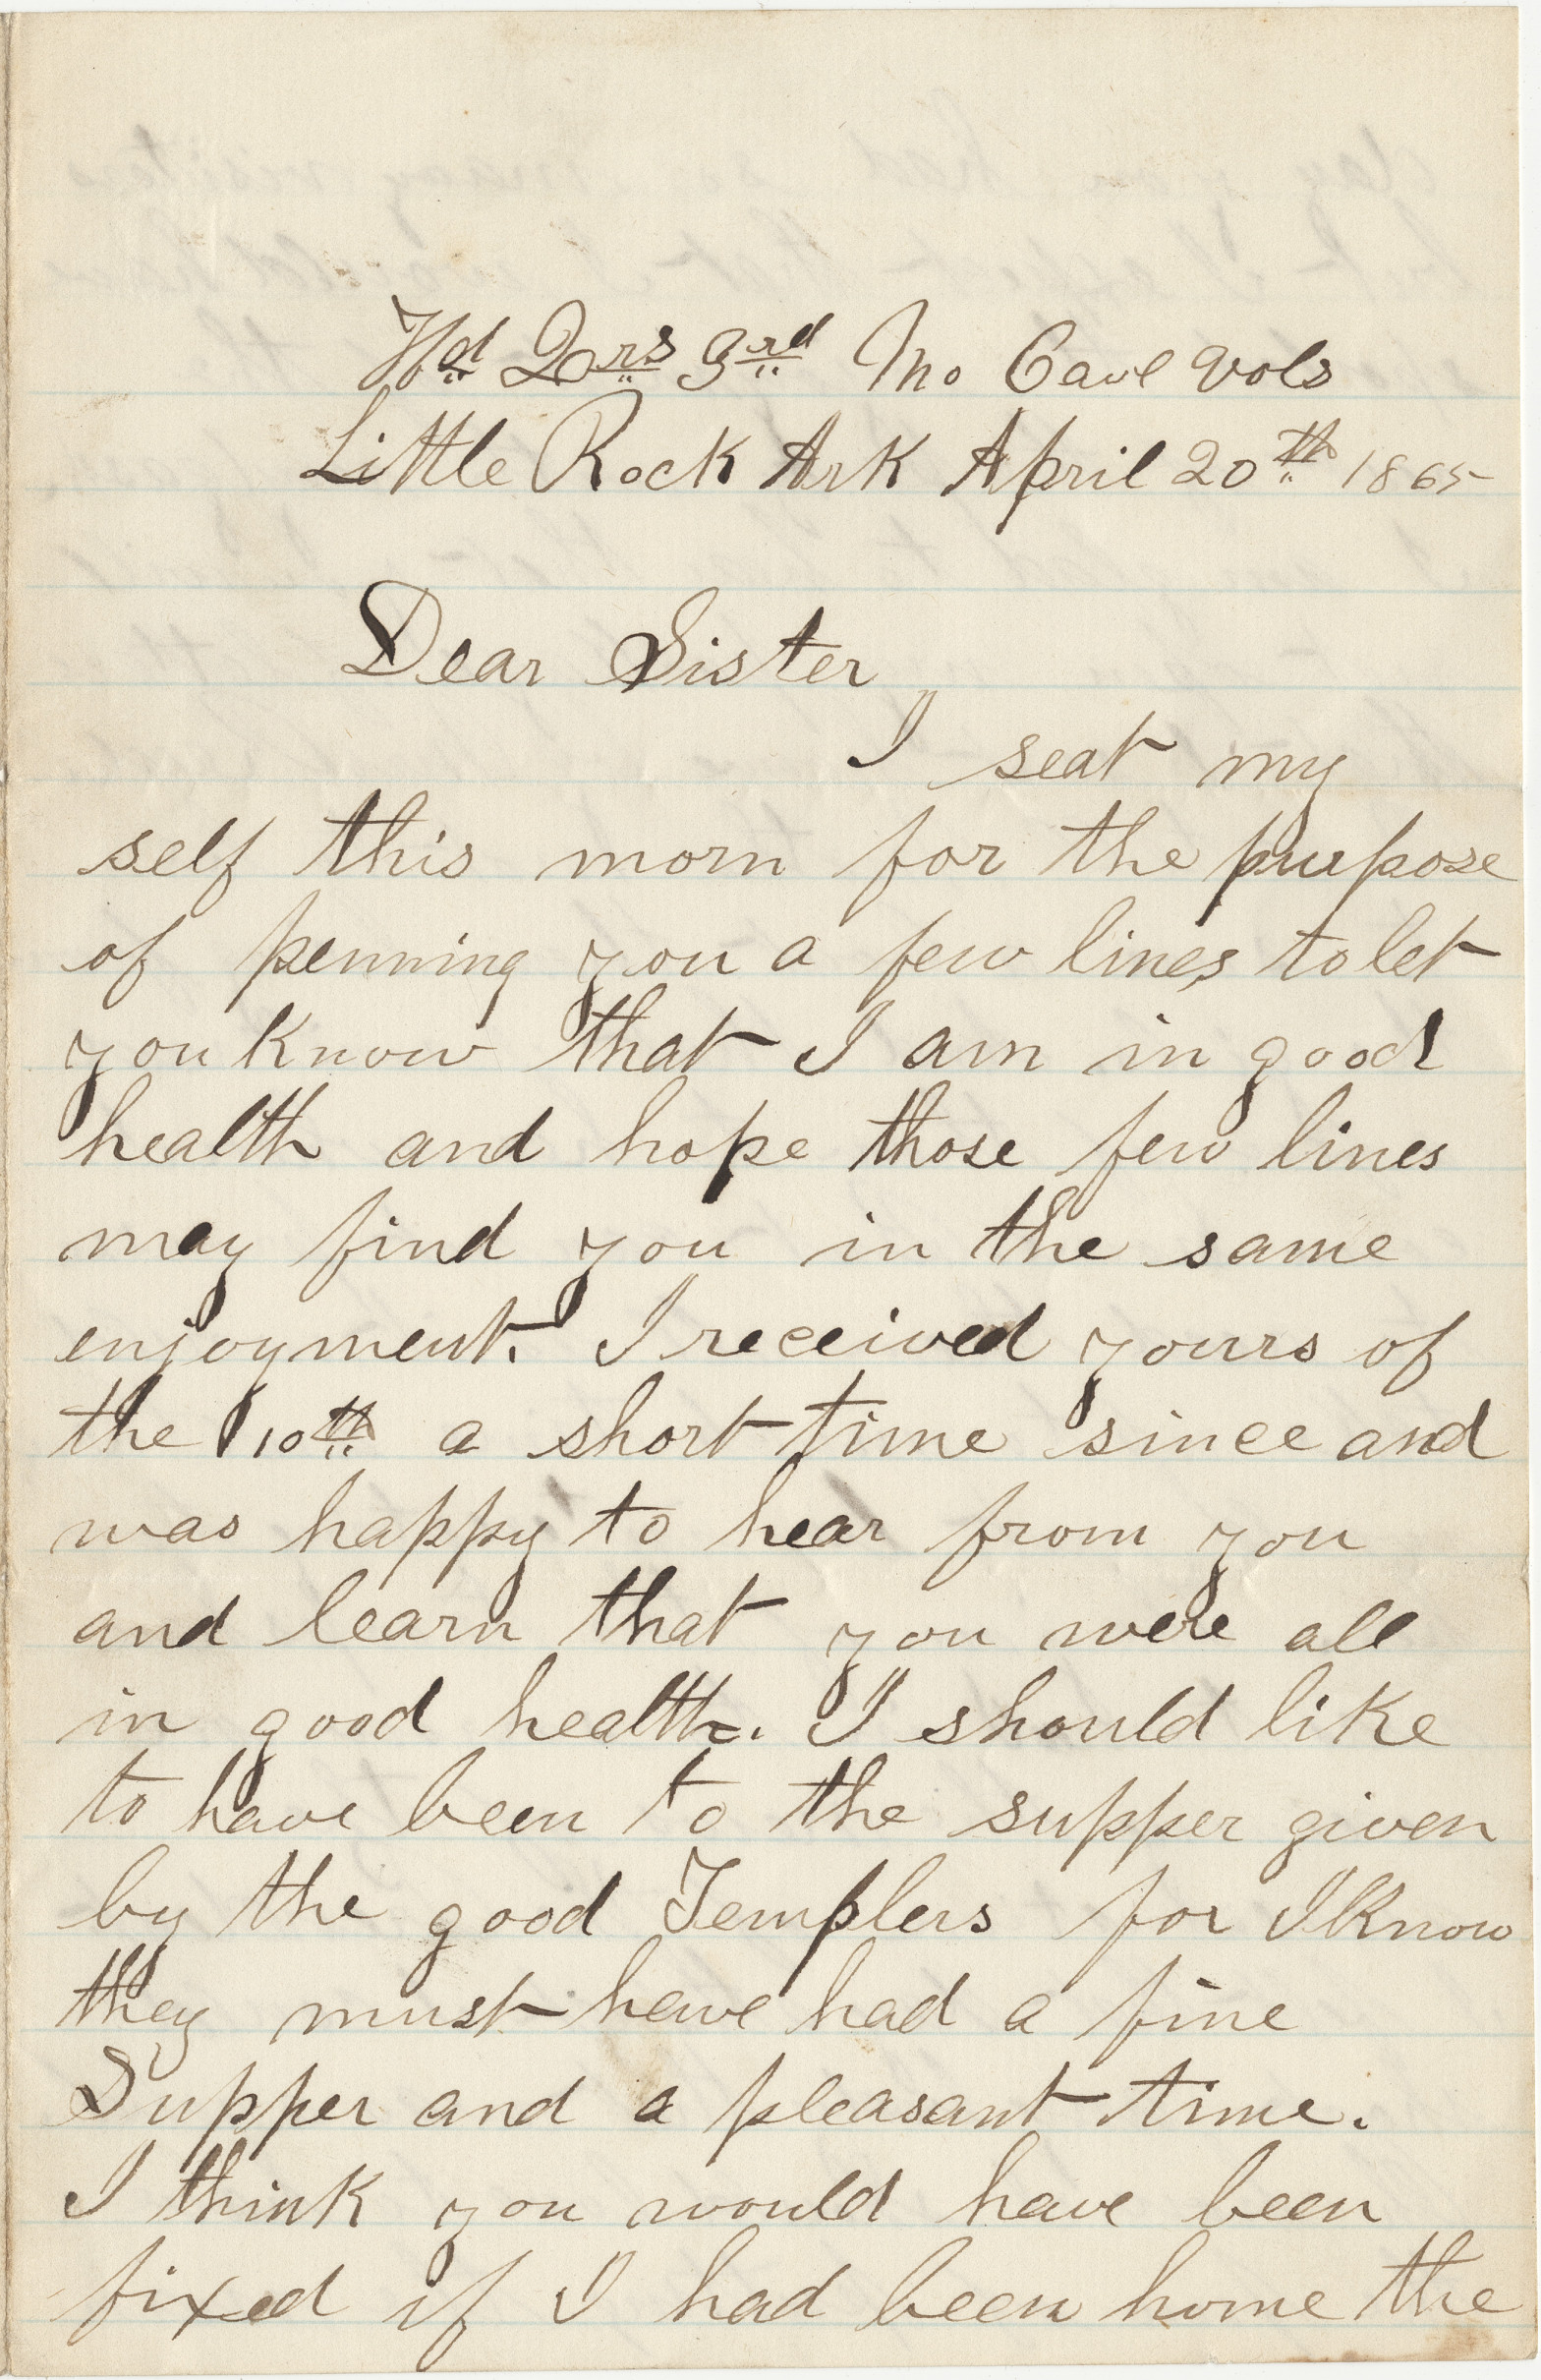 Letter from William H. Kesler, 3rd Missouri Cavalry, to his sister Rose Ann Kesler